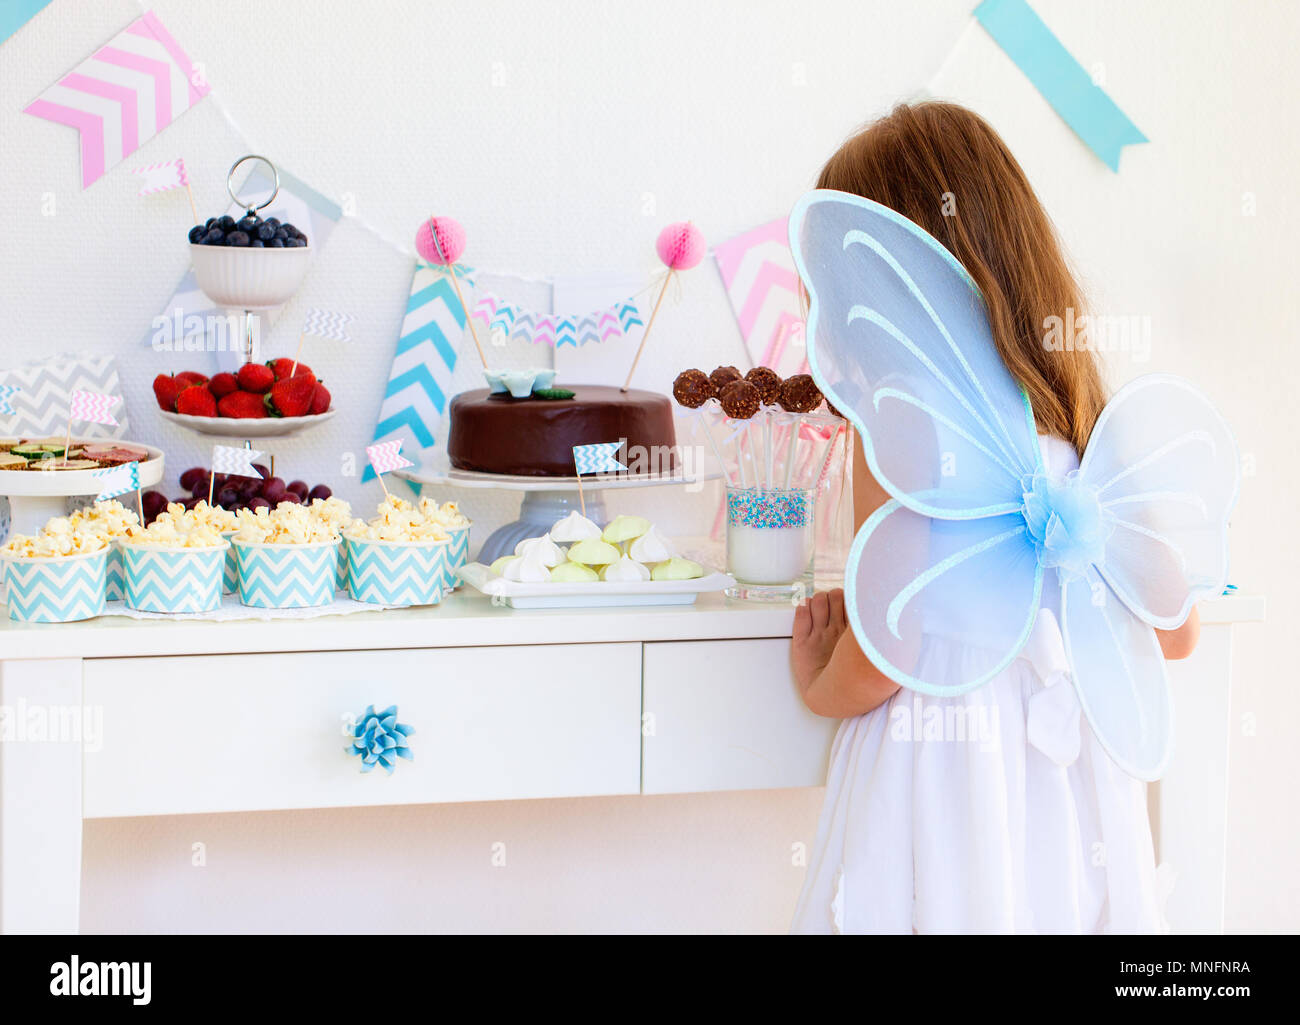 Adorable little fairy girl with wings on a birthday party near dessert table - Stock Image